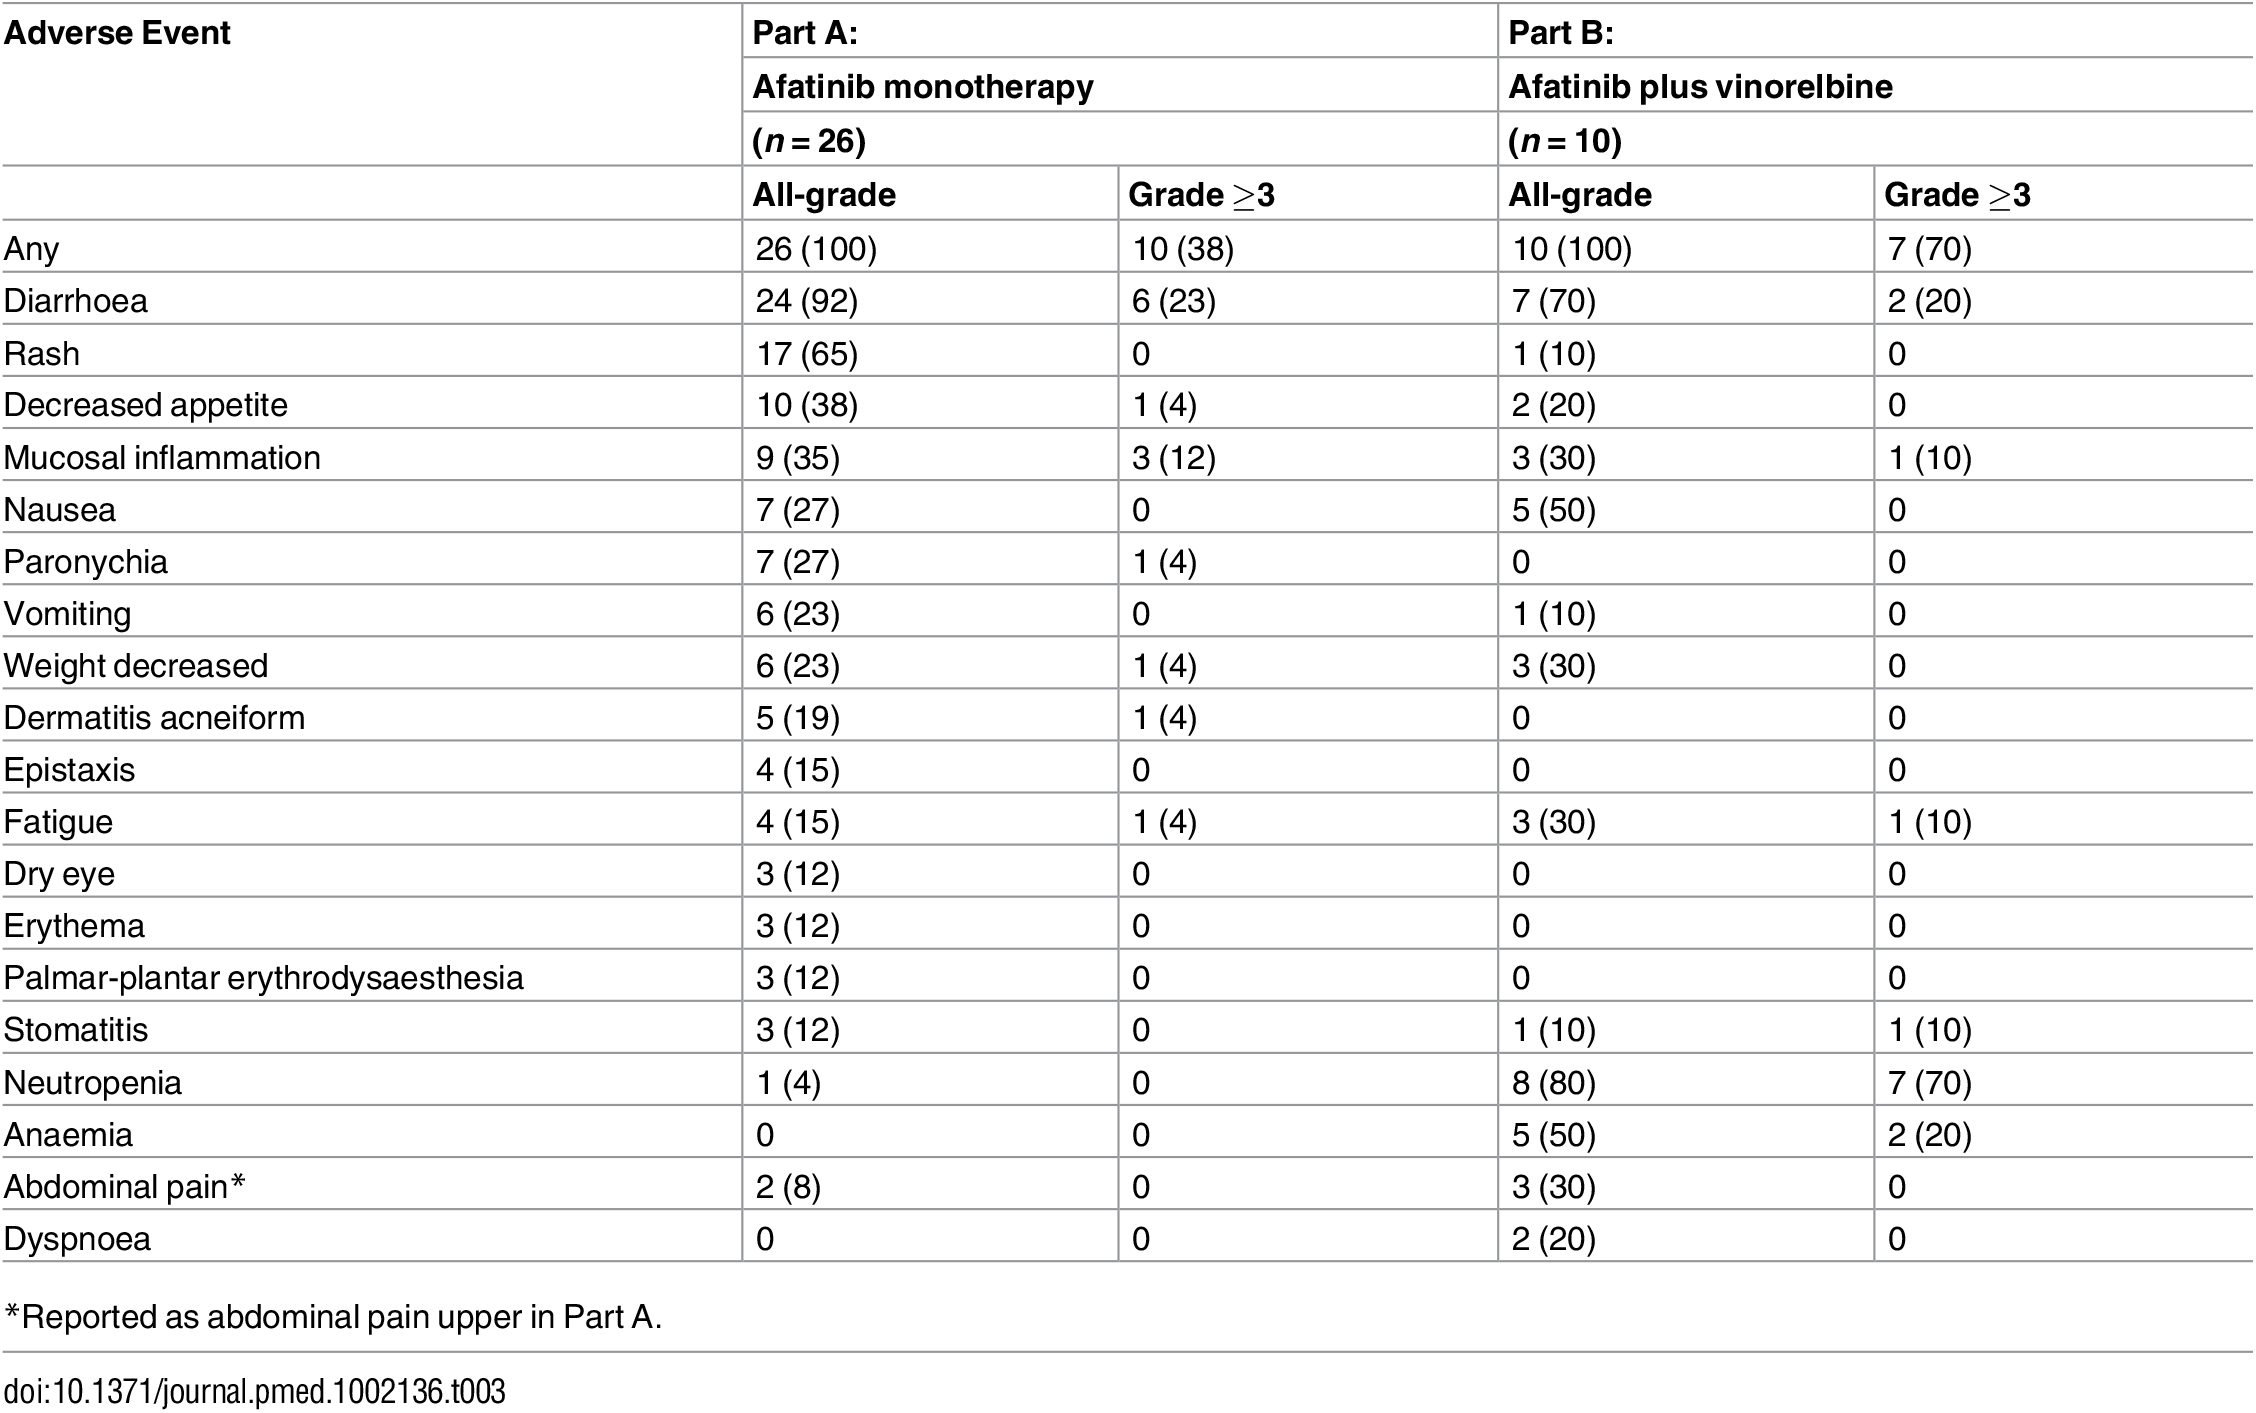 Most common treatment-related adverse events reported in ≥10% of patients.